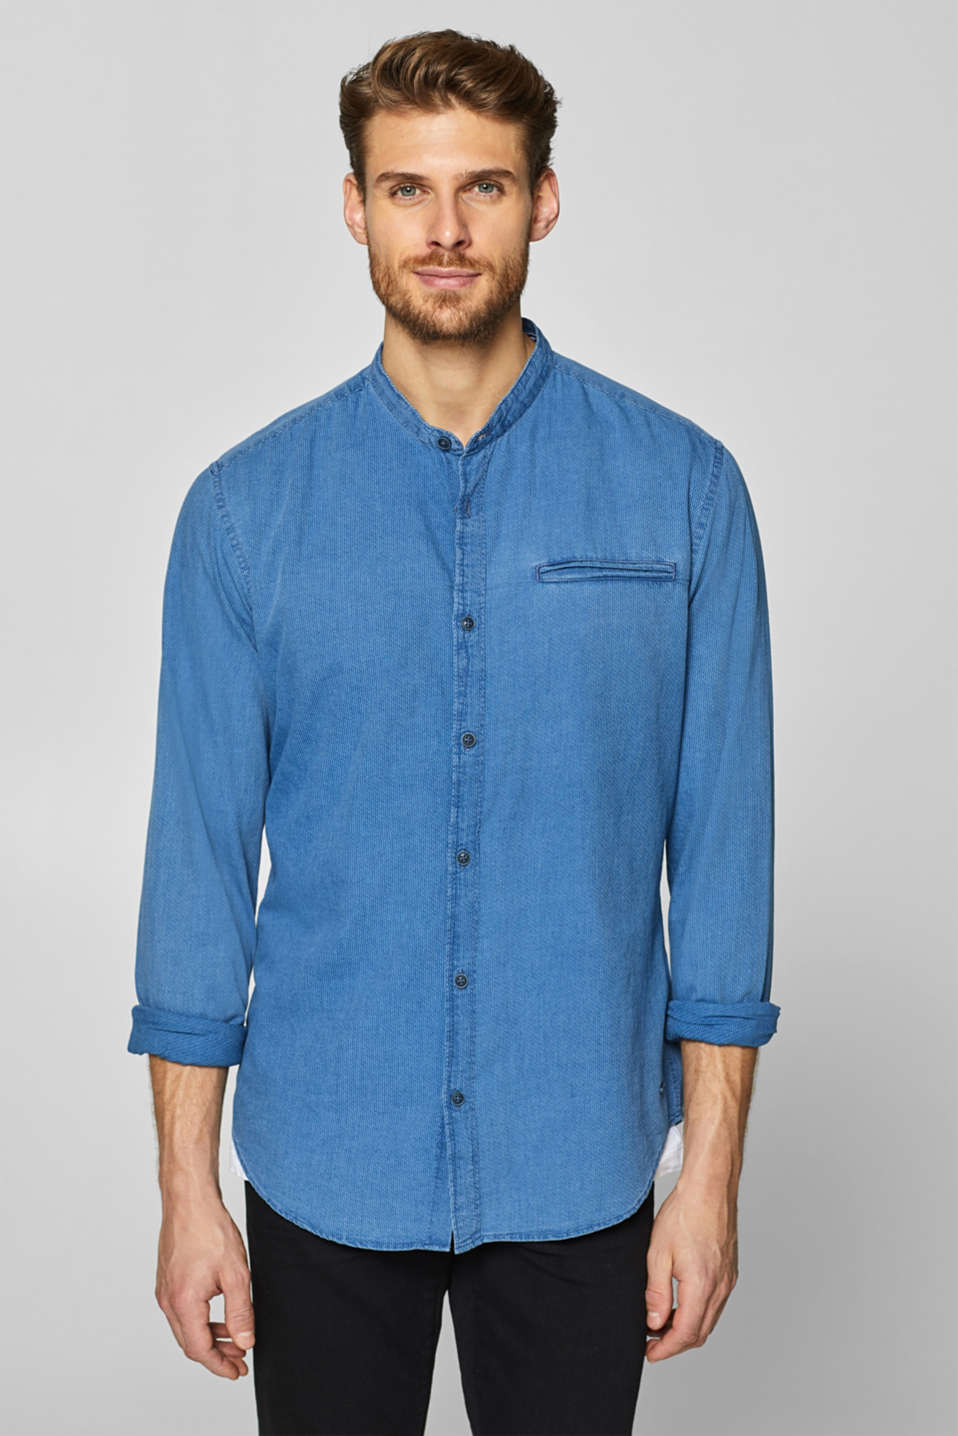 Esprit - Indigo shirt with a stand-up collar, 100% cotton